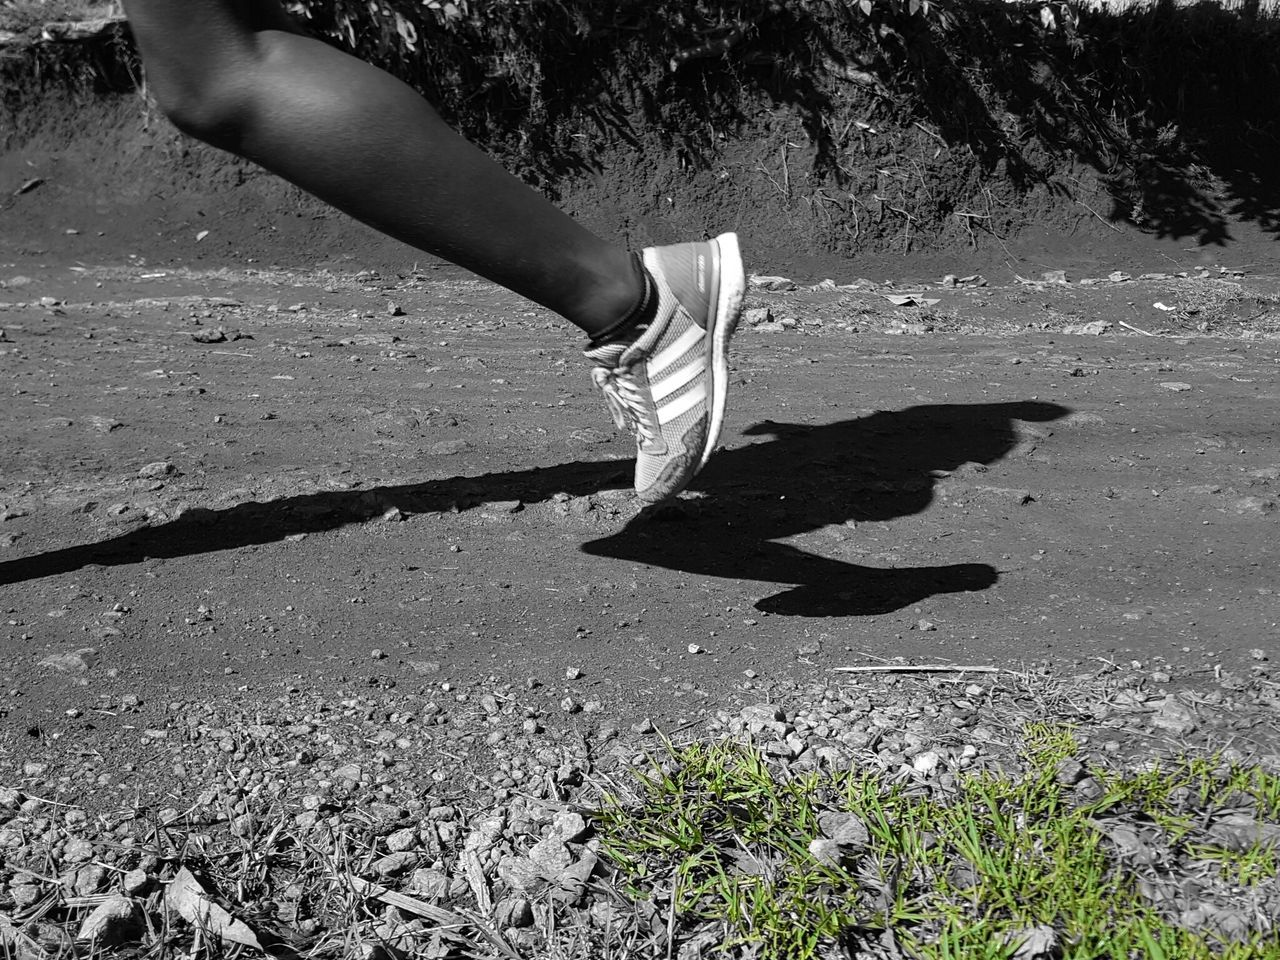 Human Body Part One Person Shoe Human Leg Low Section Adult African Runner Africa Kenyan Runner Kenya Racer Race Runners View Runners Runner Sport Sports Running Person Leg Running Shoes Running Lifestyles Monochrome Photograhy Minimalism Black And White Photography